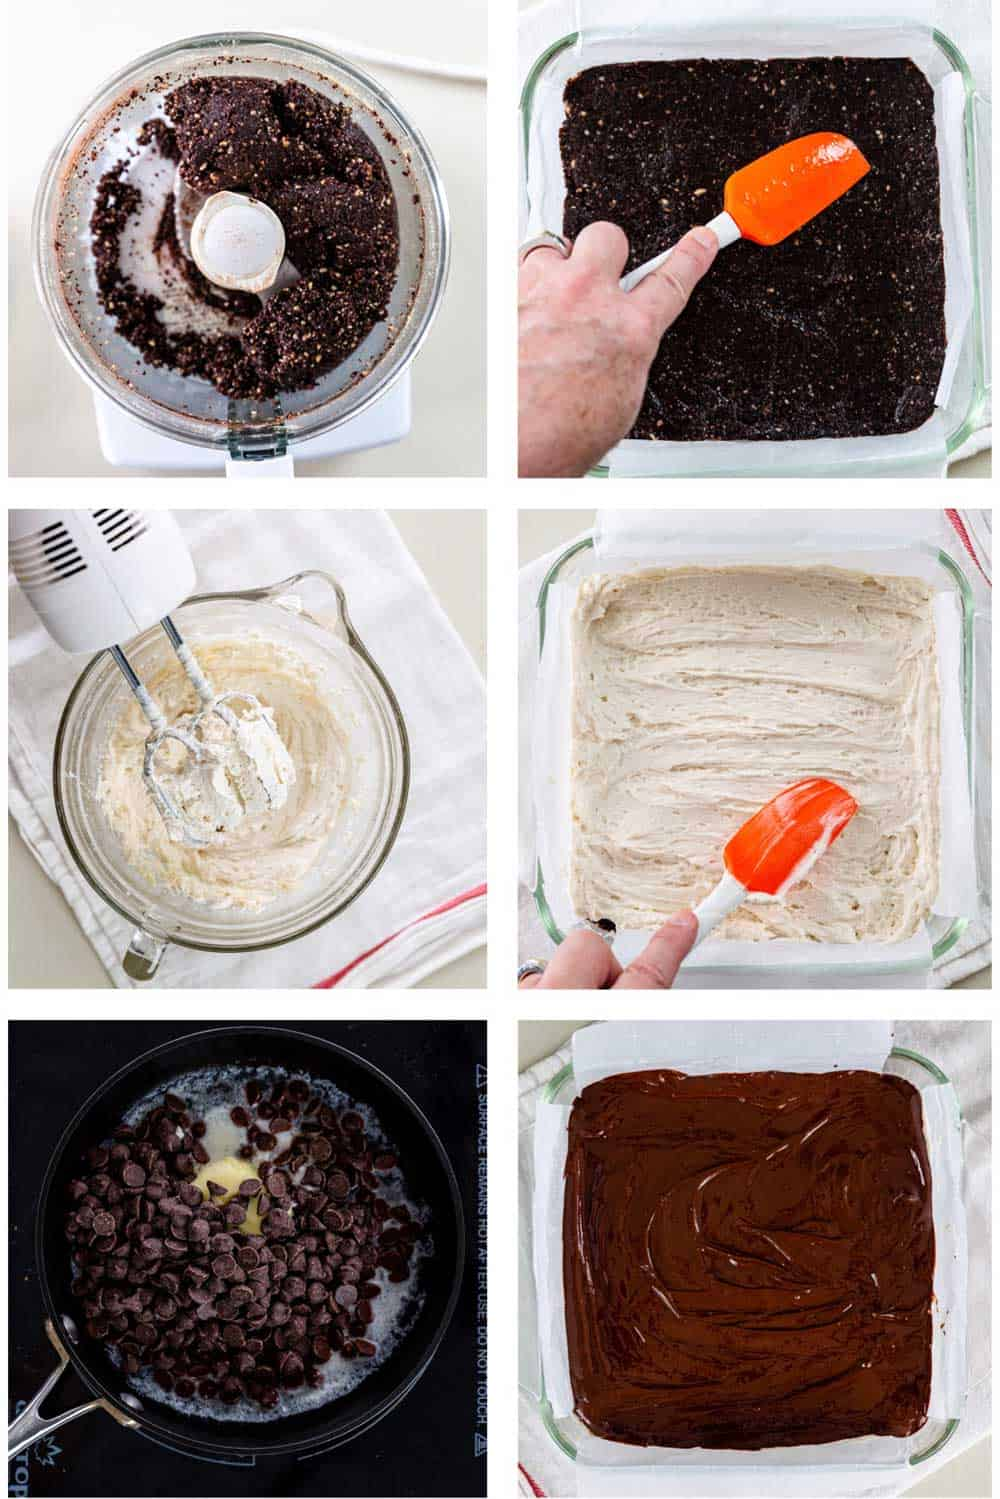 step by step photos for making nanaimo bar recipe